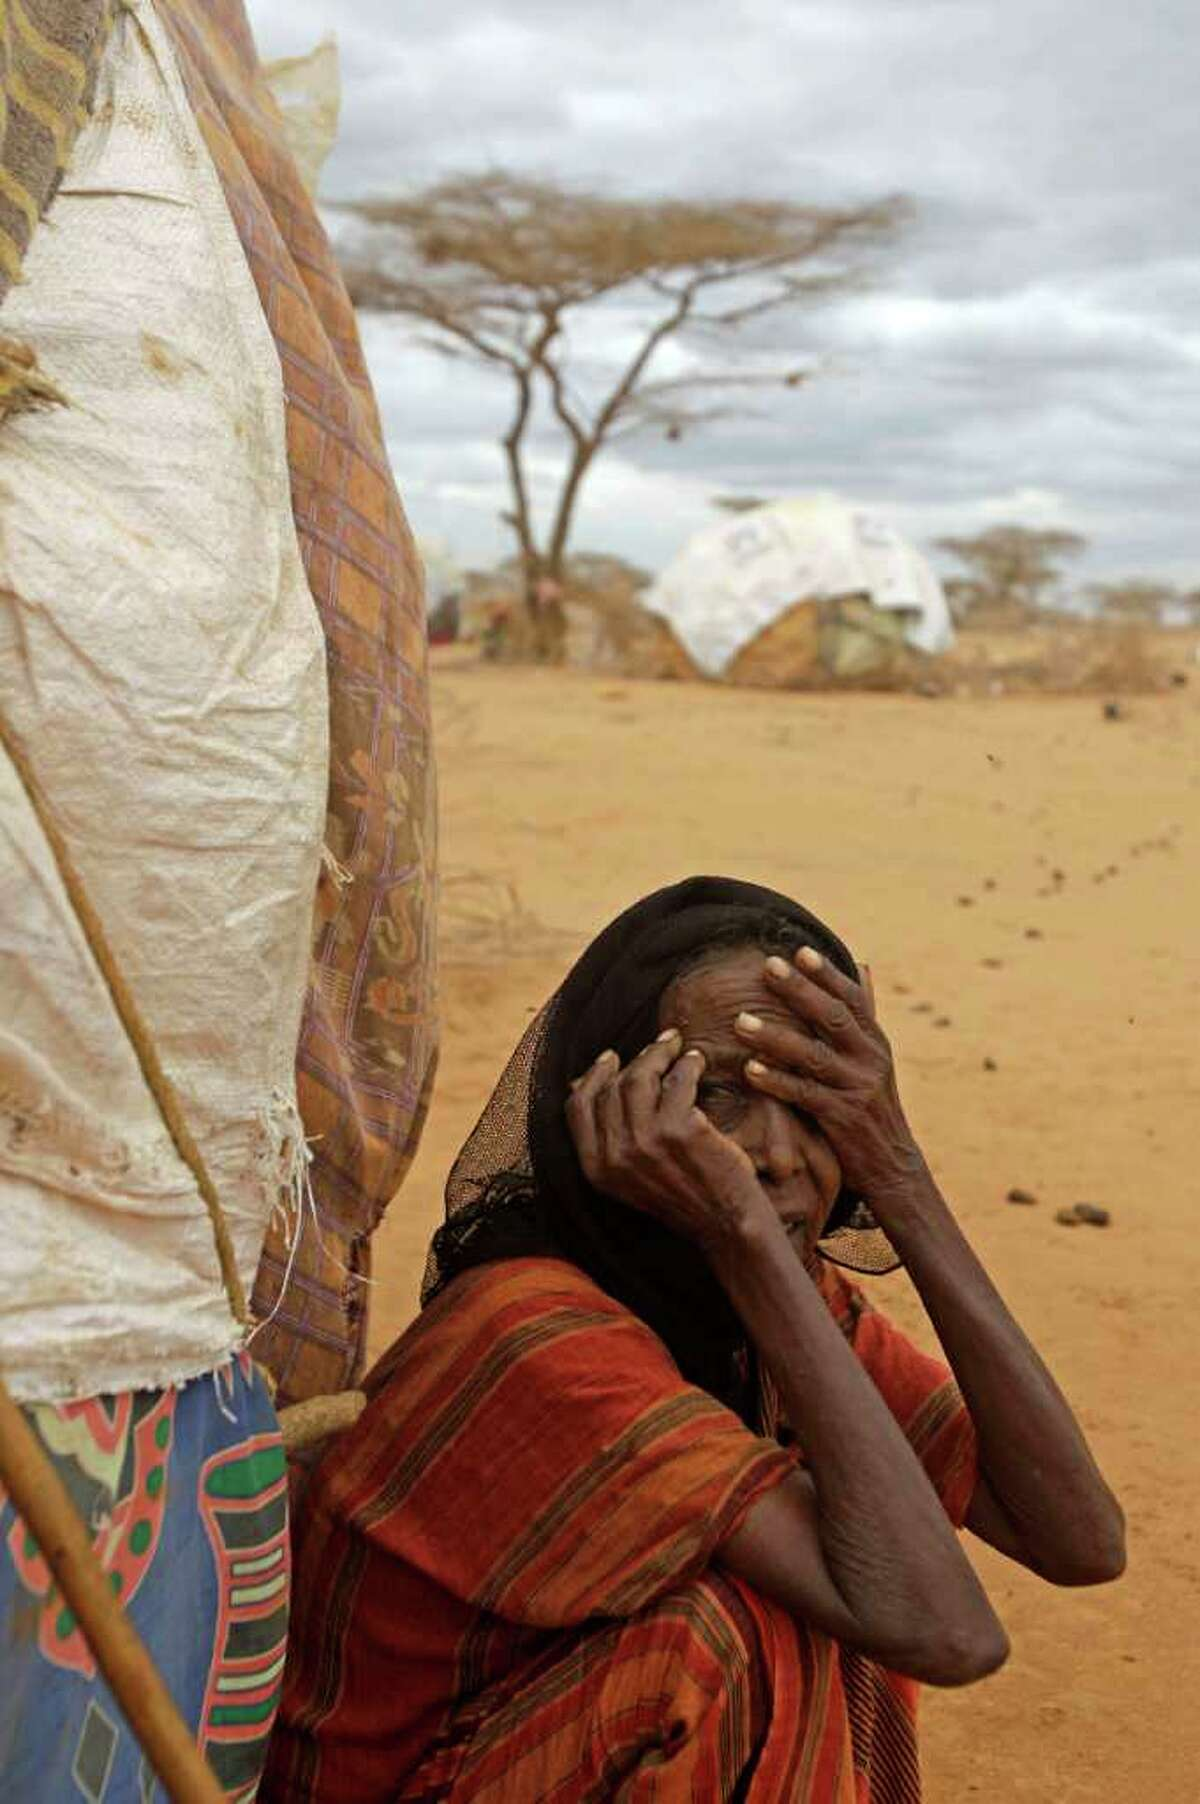 A old woman sits in front of her home at a refugee camp in Dadaab, Kenya, Thursday, Aug 4, 2011. Dadaab, a camp designed for 90,000 people now houses around 440,000 refugees. Almost all are from war-ravaged Somalia. Some have been here for more than 20 years, when the country first collapsed into anarchy. But now more than 1,000 are arriving daily, fleeing fighting or hunger(AP Photo/Schalk van Zuydam)